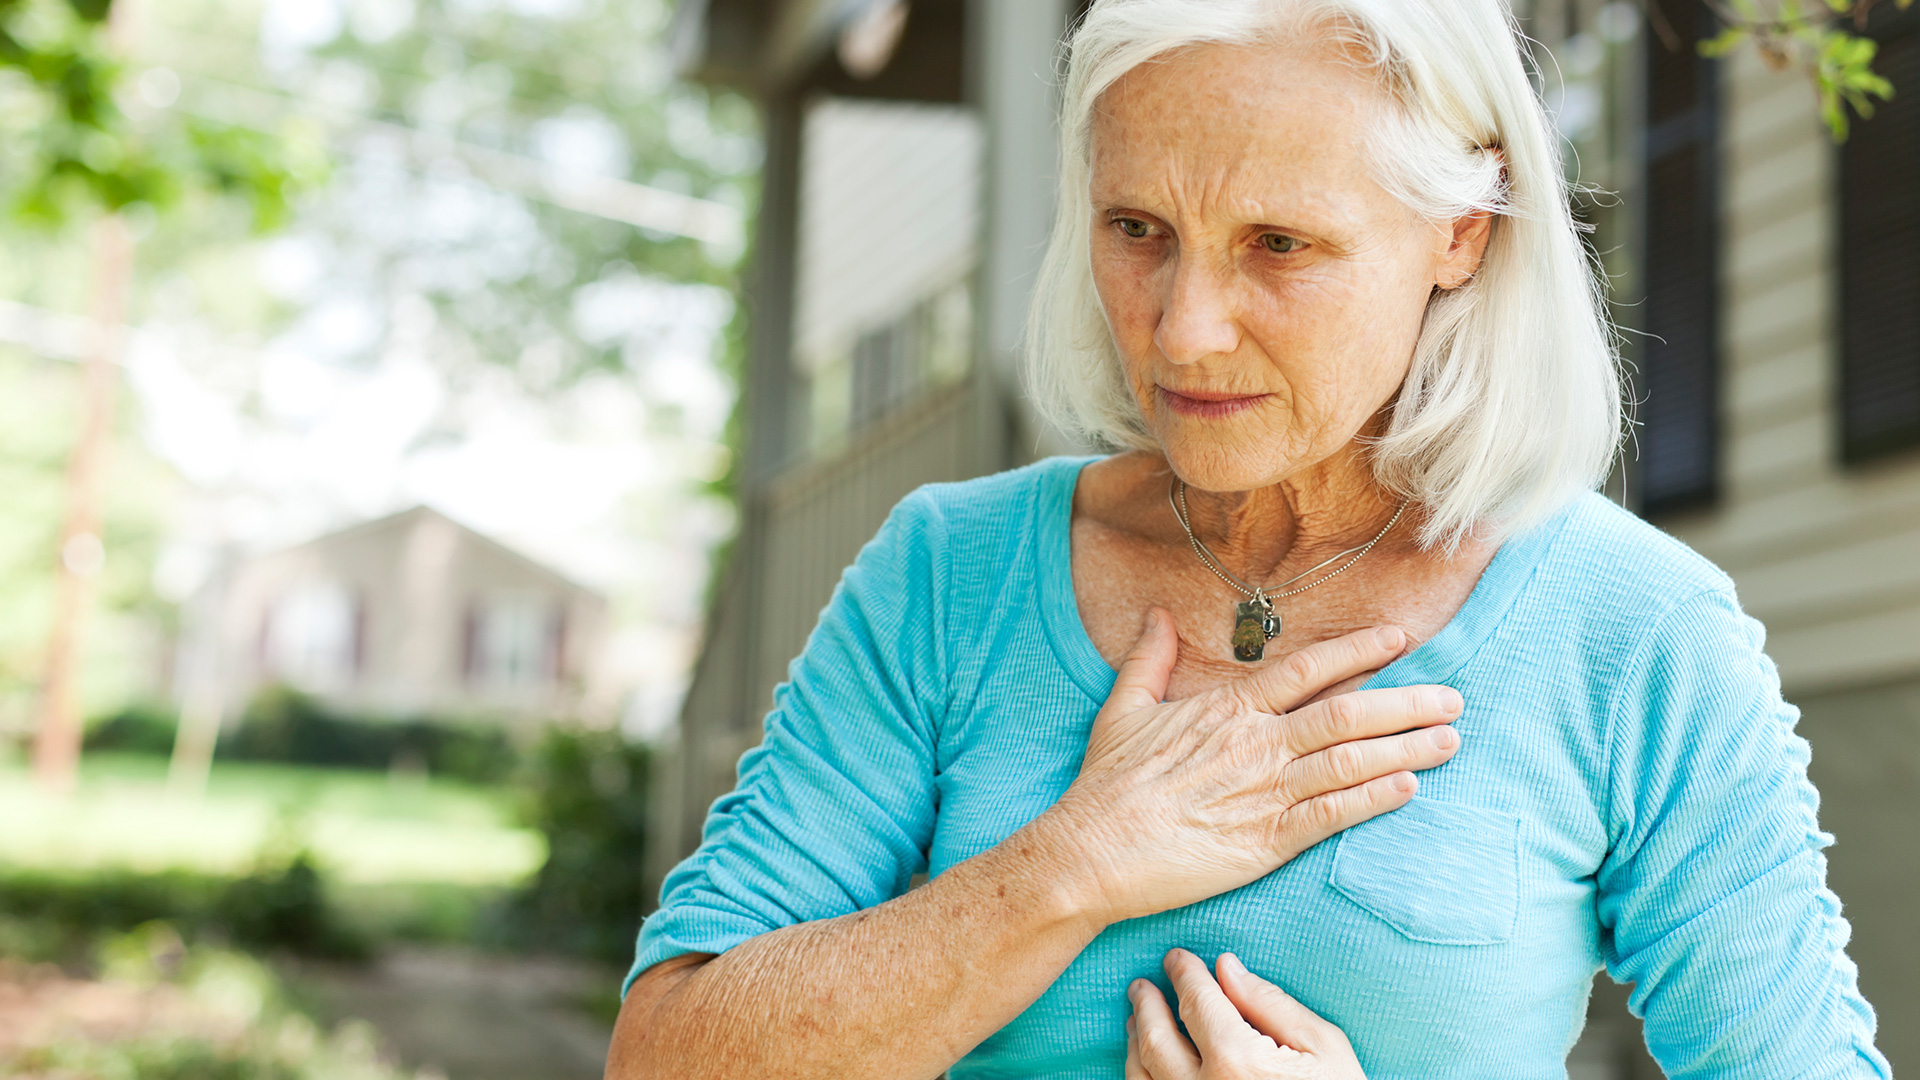 Woman suffering from heart burn holding her chest